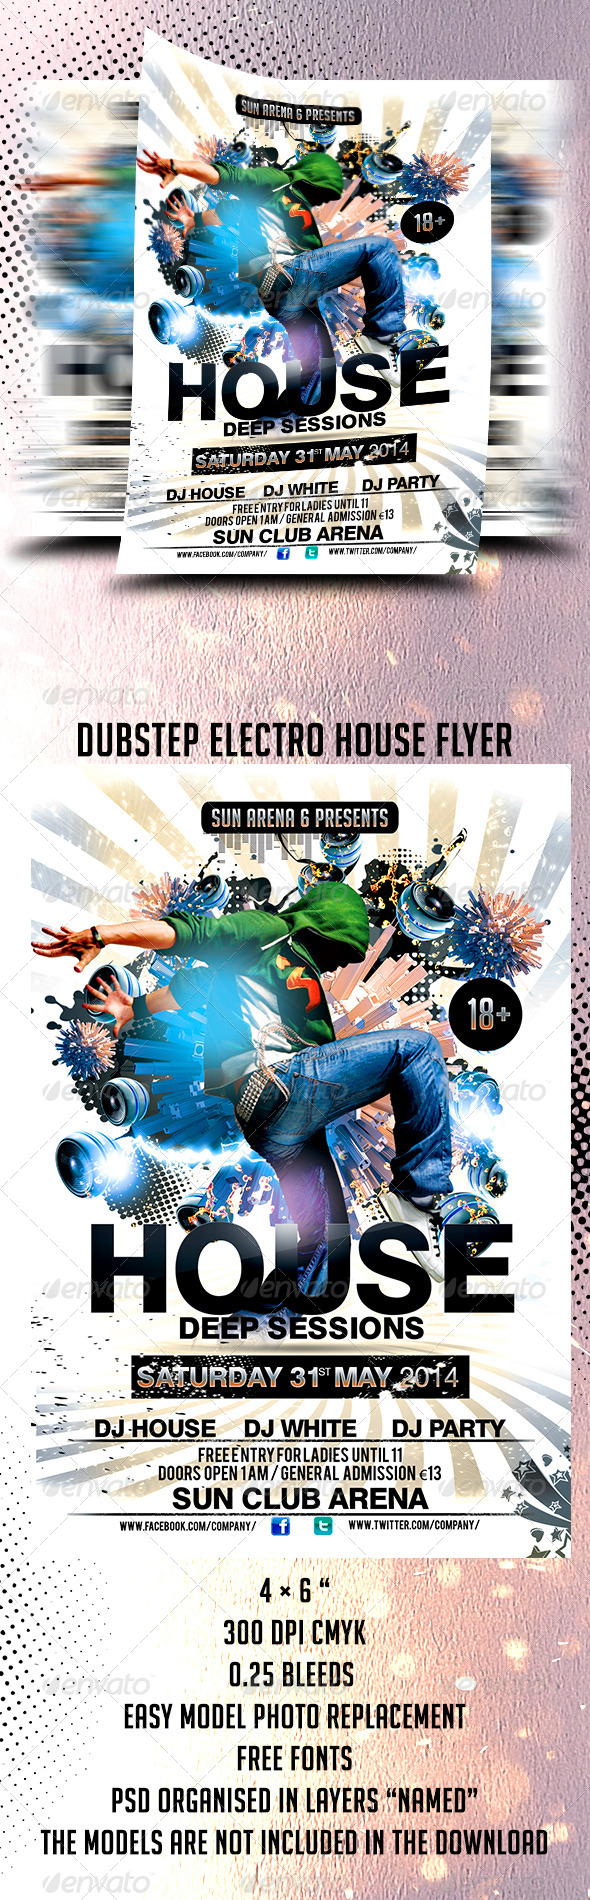 Dubstep Electro House Flyer Template - Events Flyers